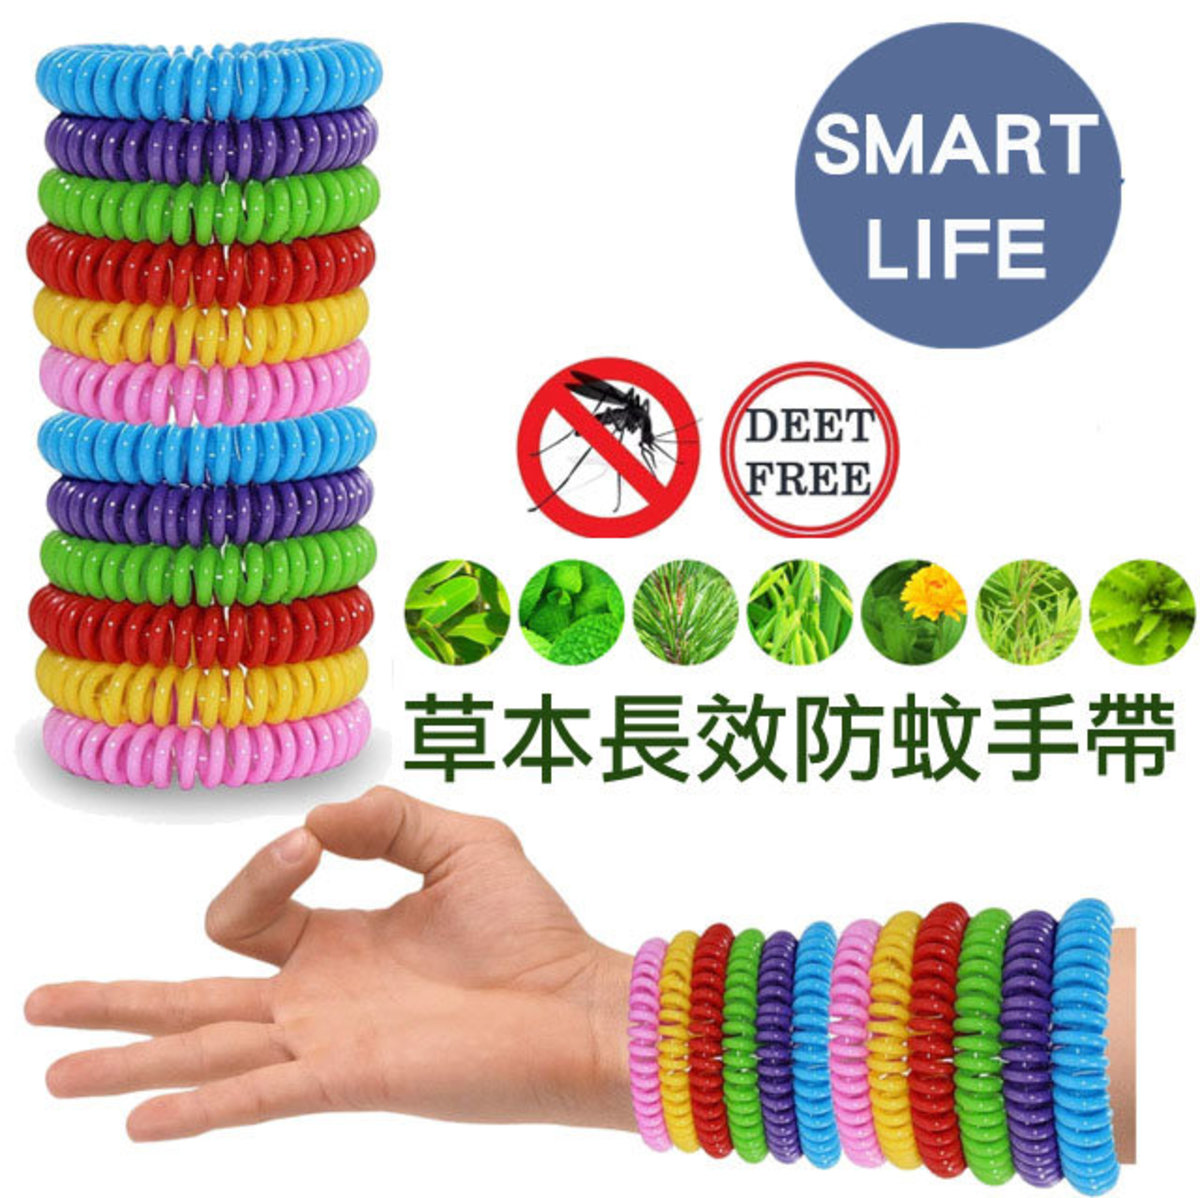 Anti-mosquito Hand Strap / Bracelet (For infants and pregnant women) (Random Colors)